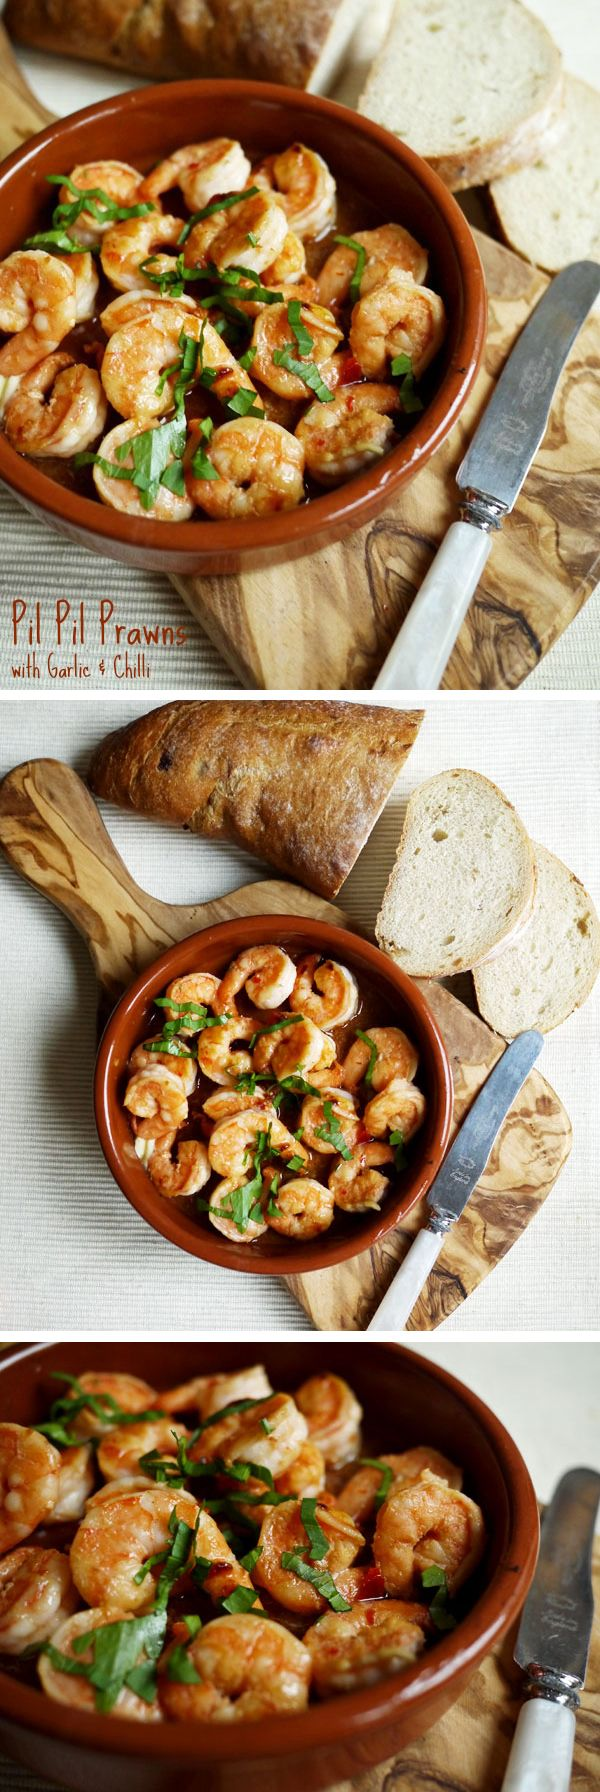 Spanish Pil Pil Prawn Shrimp with Garlic and Chilli - super fast food. Delicious and tasty dinner in only 5 minutes! #glutenfree #paleo